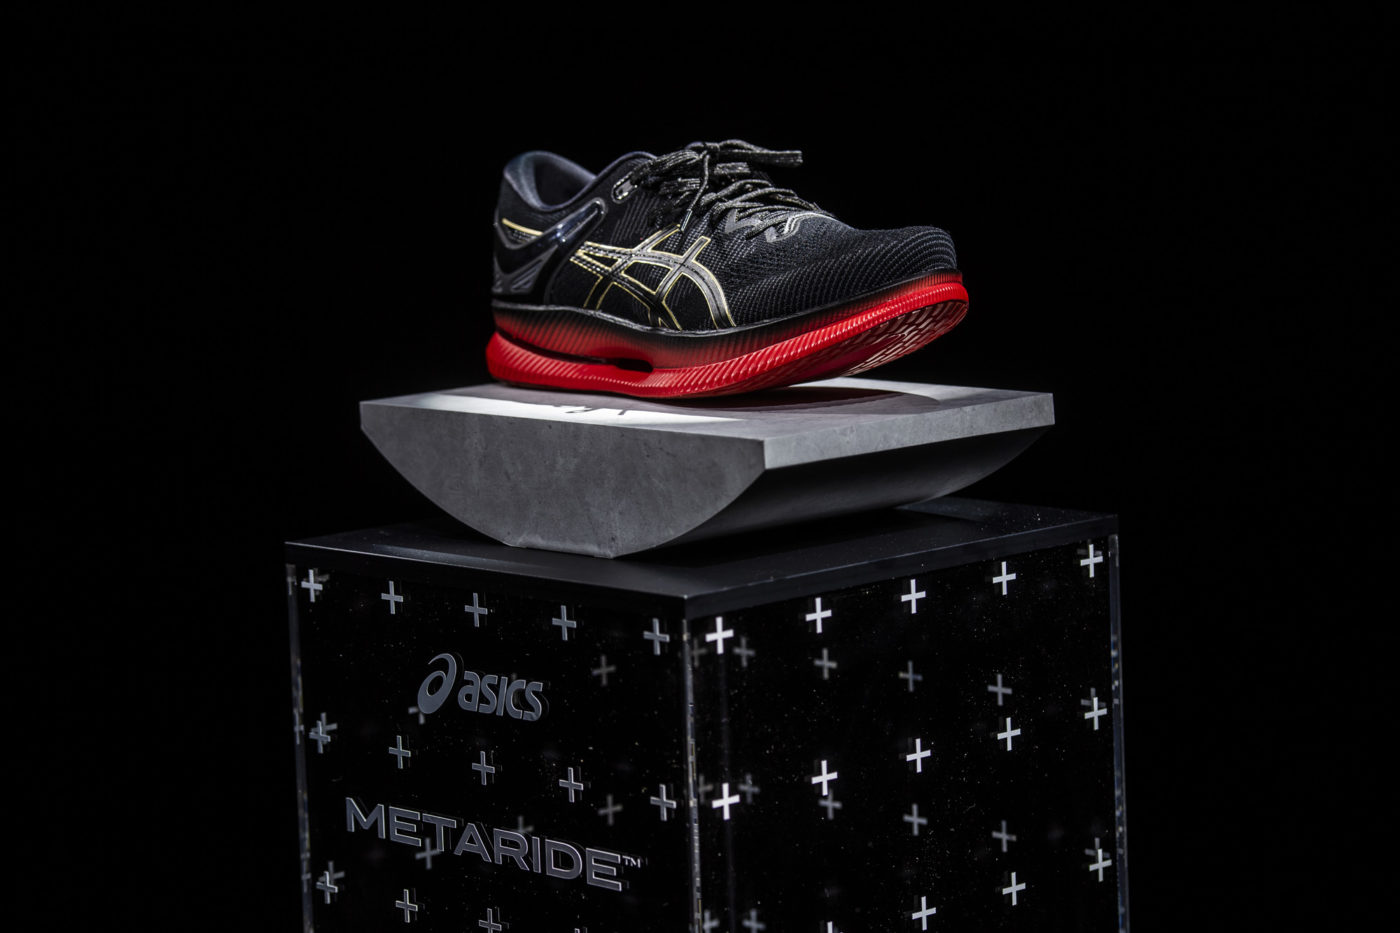 chaussures-course-a-pied-asics-metaride-5